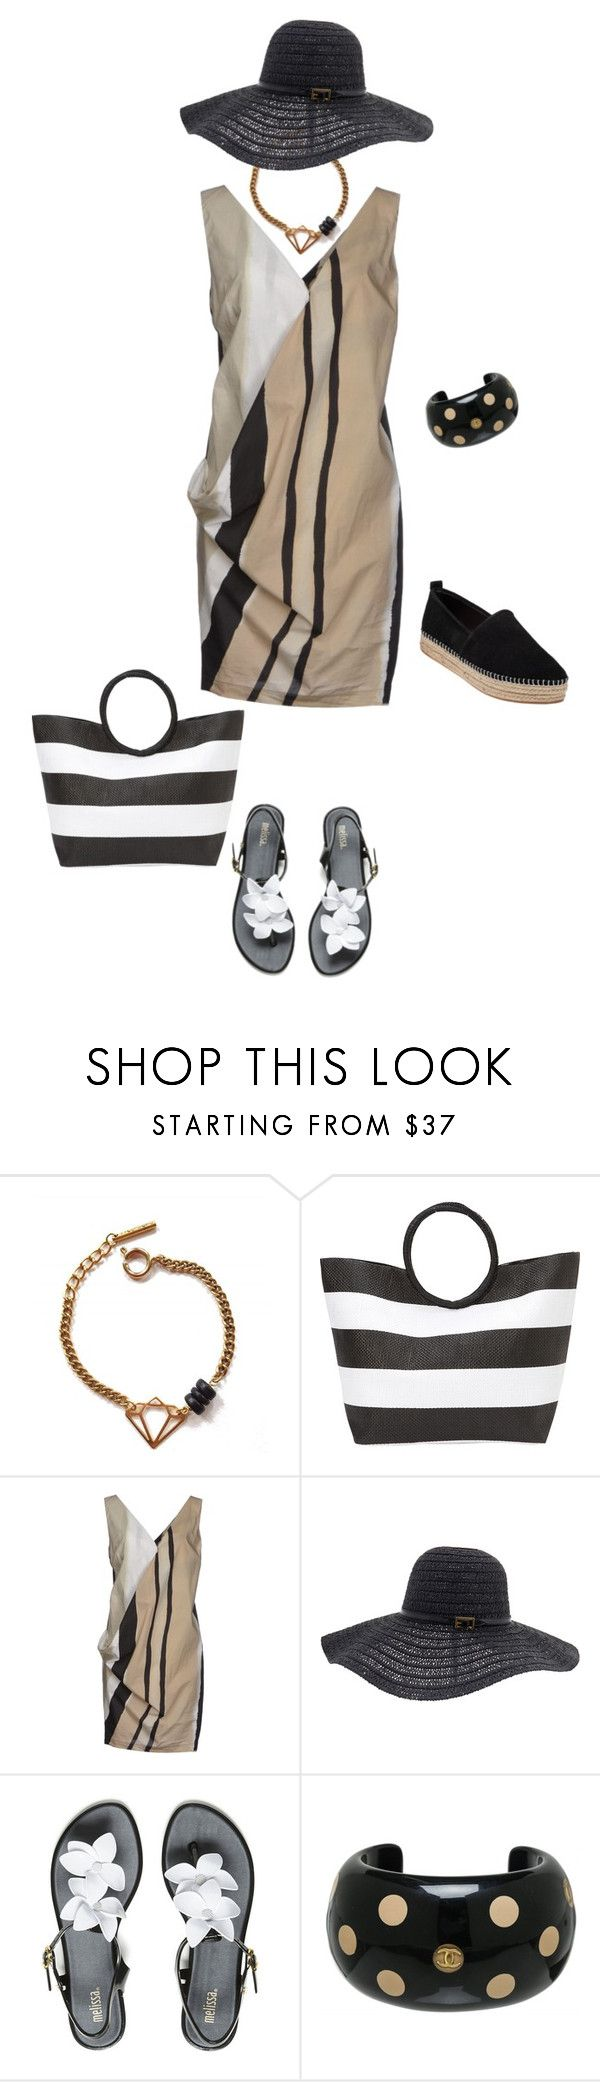 """""""Untitled #590"""" by clothes-wise ❤ liked on Polyvore featuring Tilly Doro, Magid, Malloni, Melissa Odabash, Melissa, Chanel and Steve Madden"""